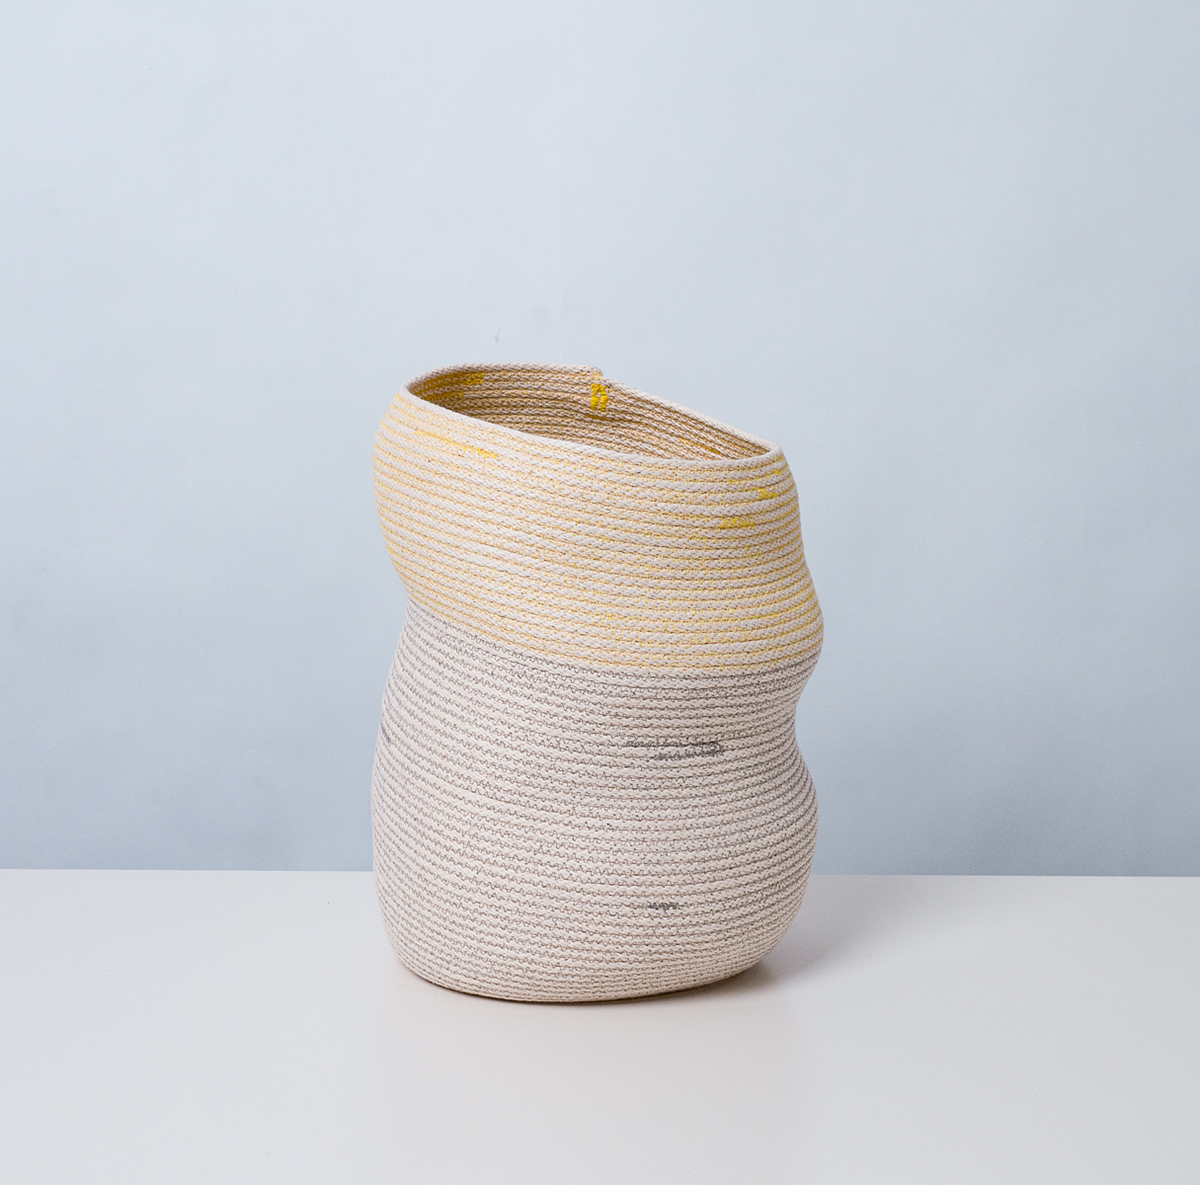 Asymmetrical Basket No.2, 2012, stitched cotton rope. Photo by Michael Popp